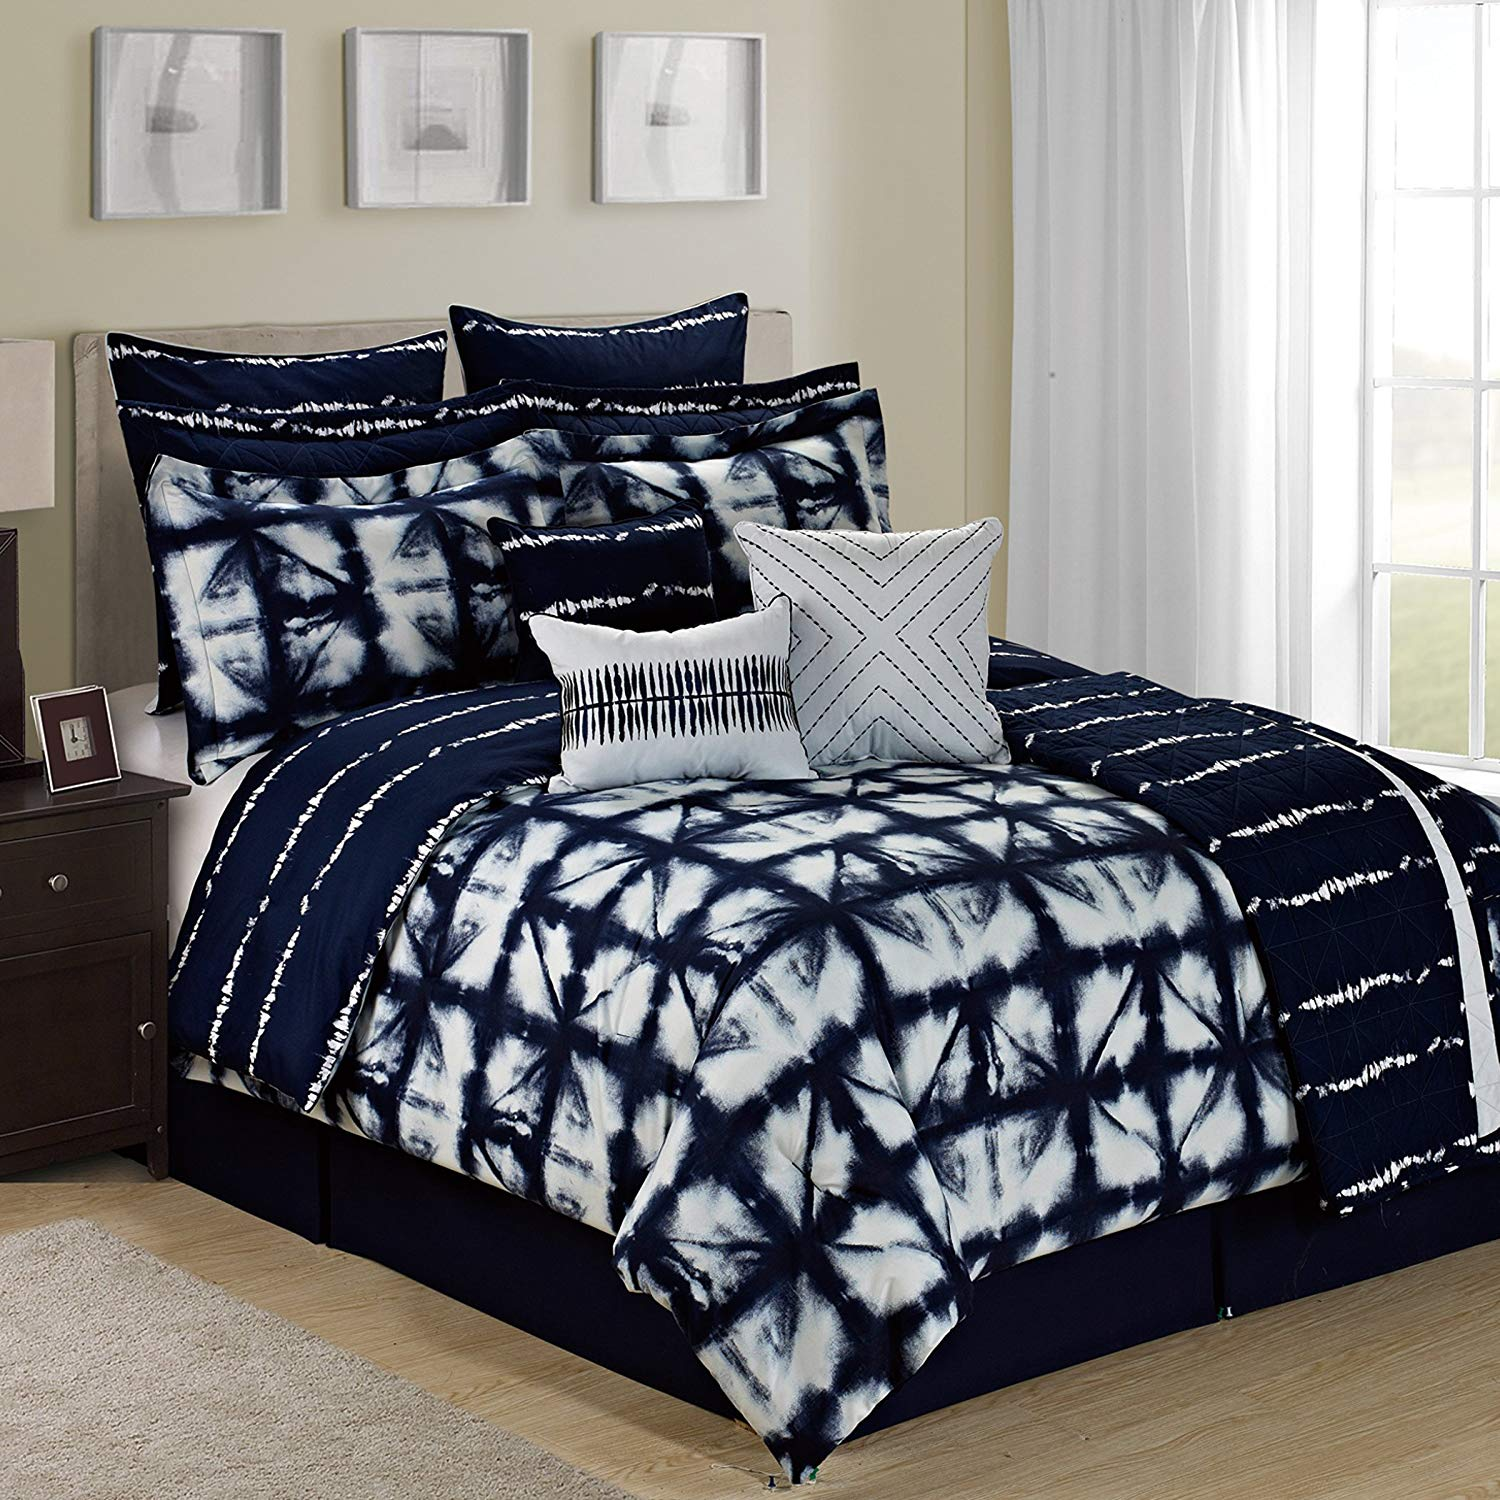 Tie Dye Plaid 12 Piece Comforter Set - Navy/White/Multi-color